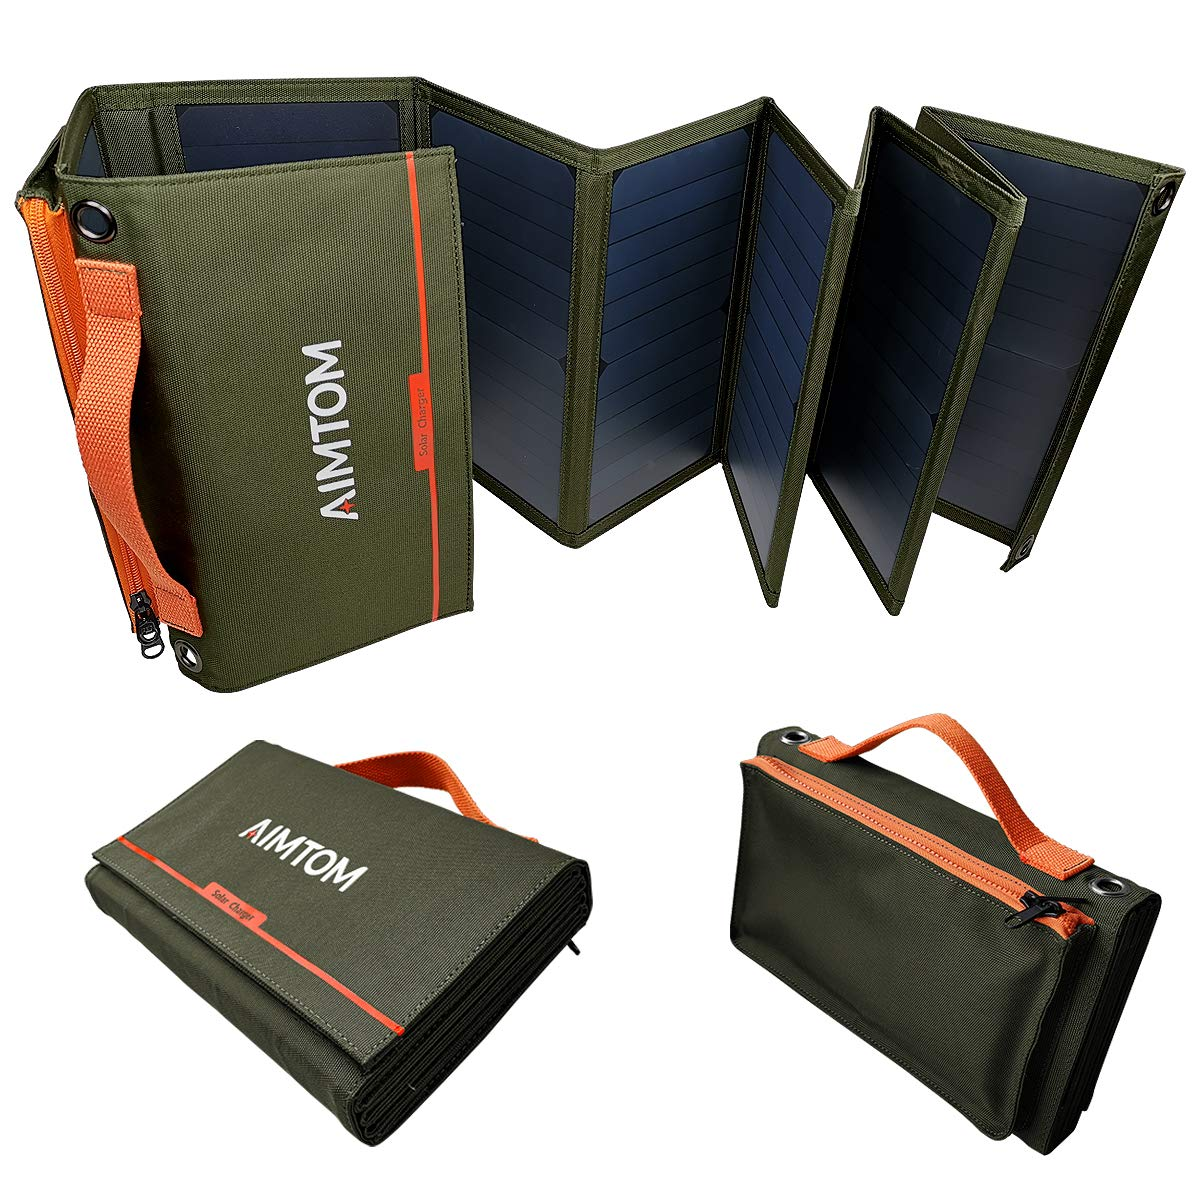 AIMTOM Portable Solar Charger - 60W Foldable Solar Panel with 5V USB and 18V DC for iPhone, Tablet, Laptop, Camera, Cell Phone, GPS and 5-18V Devices - Compatible with Solar Generators Power Stations